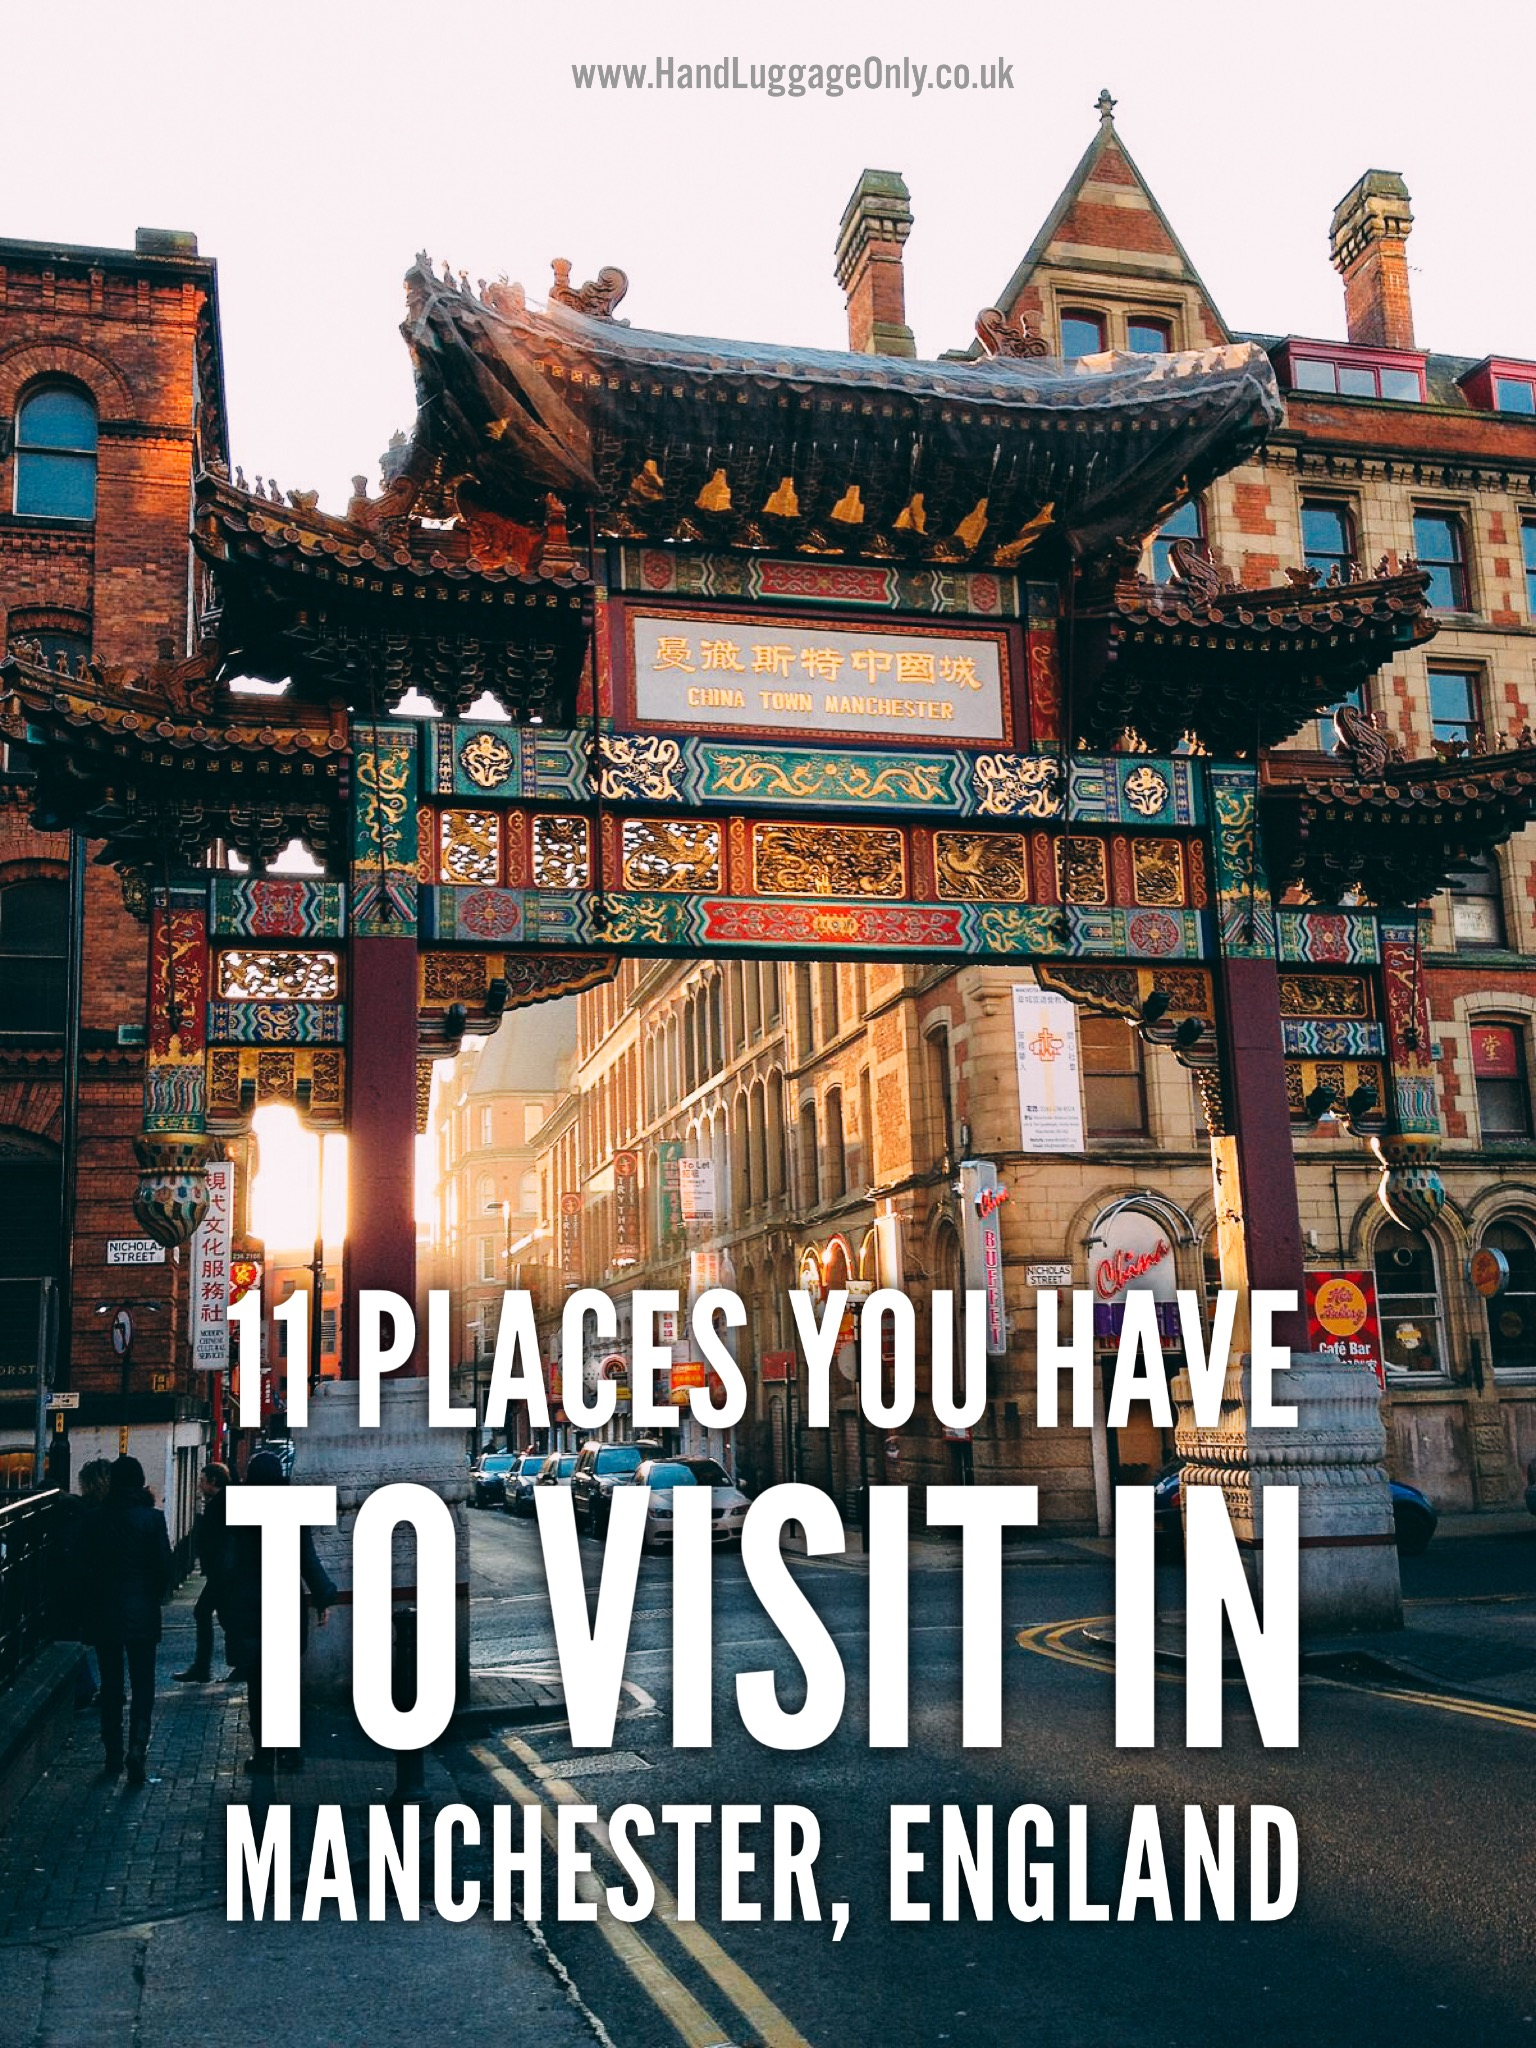 11 Places You Have To Visit On A First Time Trip To Manchester... In England, The UK (2)